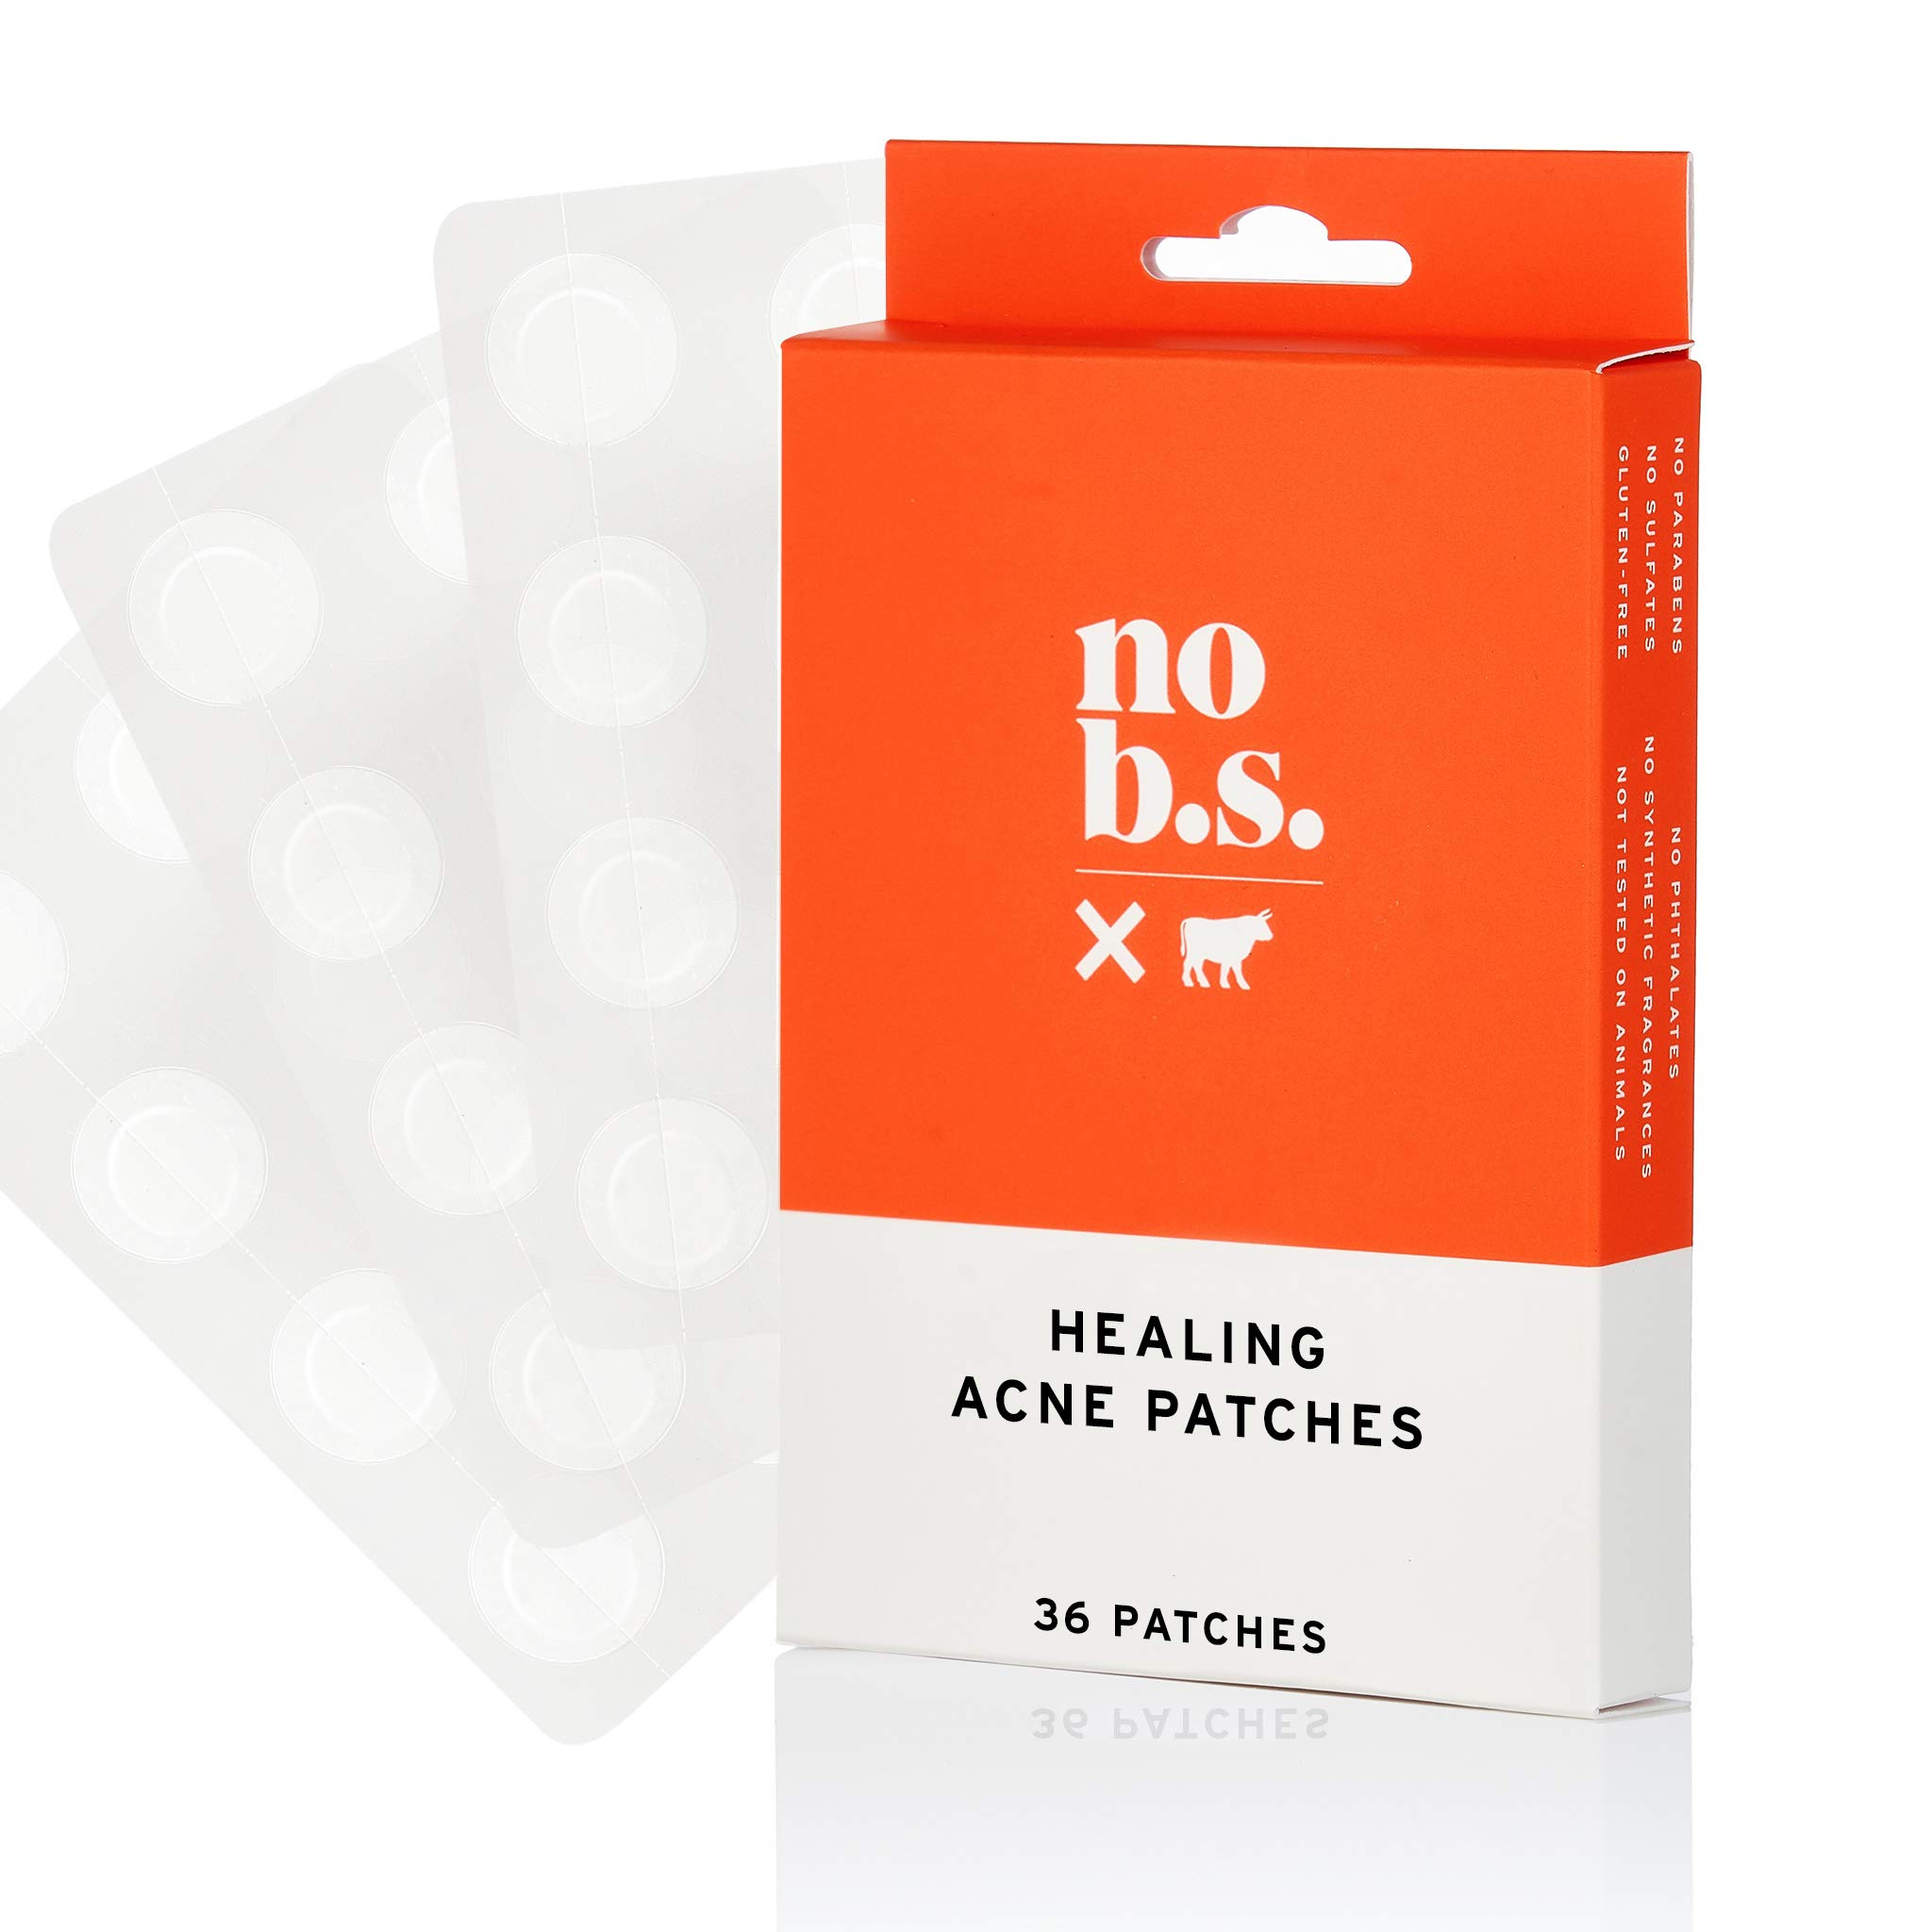 No B.S. Acne Patch - Acne Spot Treatment For Daily Use - Discreet, Non-Irritating, Quick Healing To Prevent Acne Scars by NO B. S. NO BAD STUFF